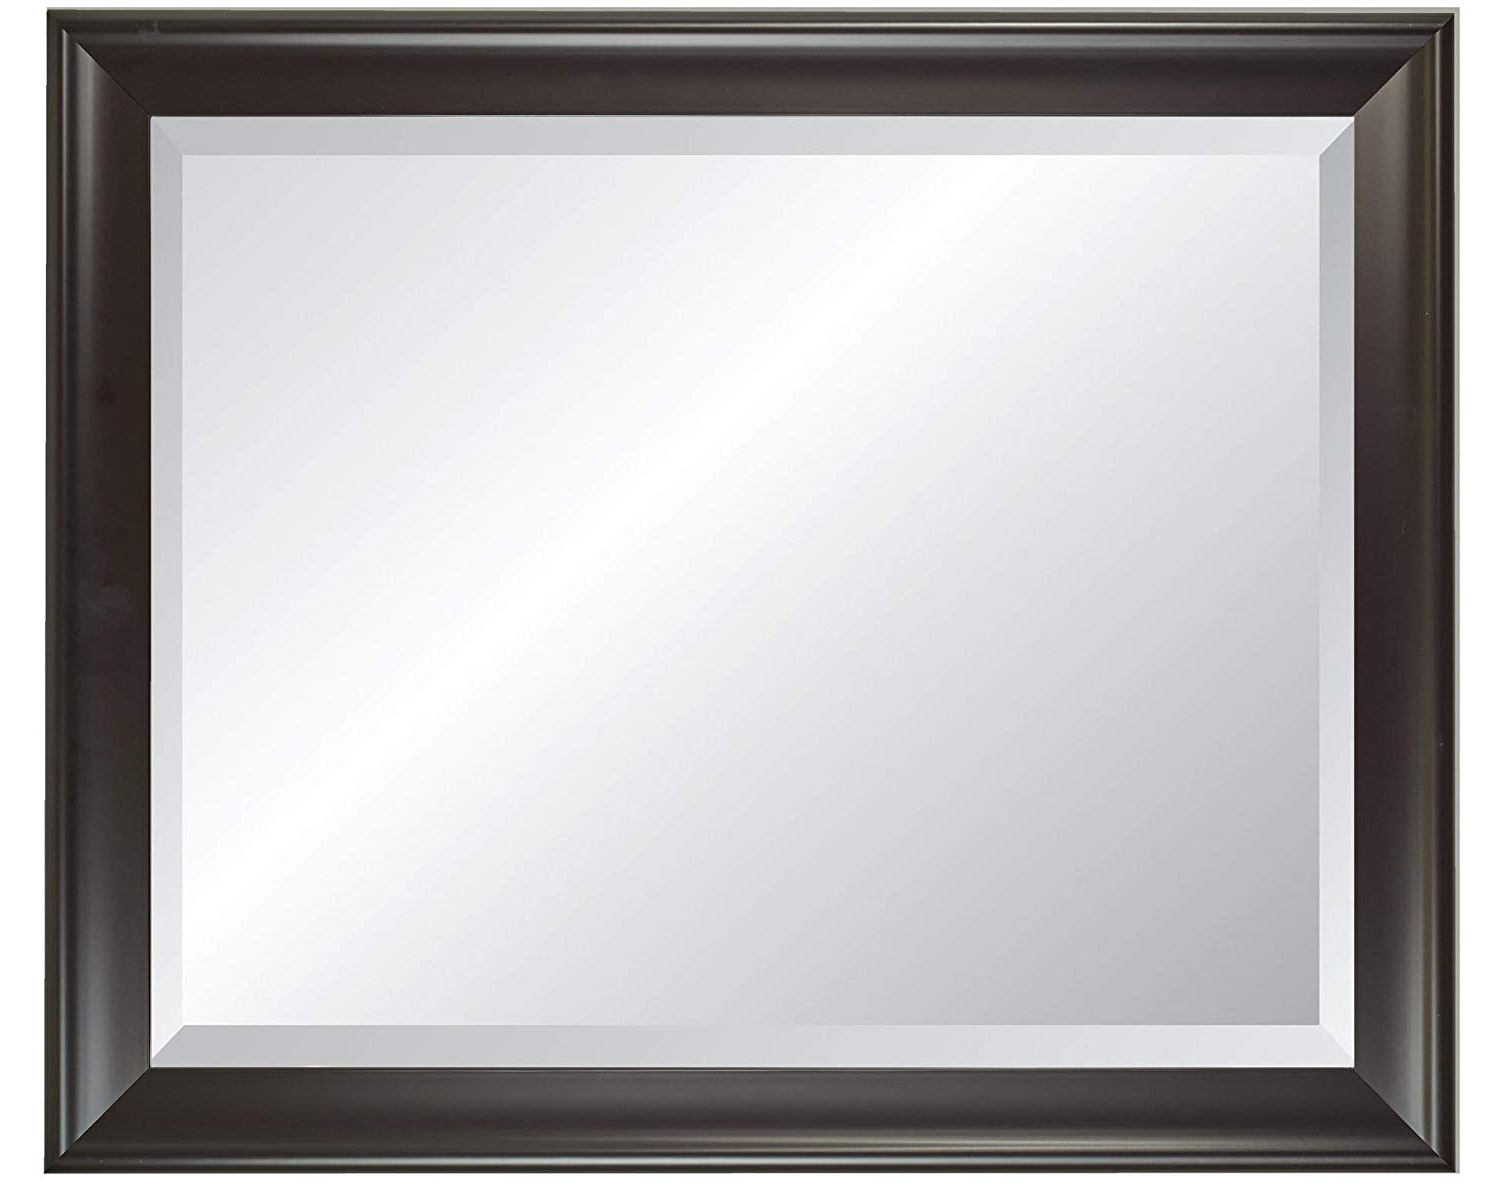 Amazon: Alpine Art & Mirror Alpine Furniture Black Framed Wall Within Recent Black Framed Wall Mirrors (View 6 of 20)